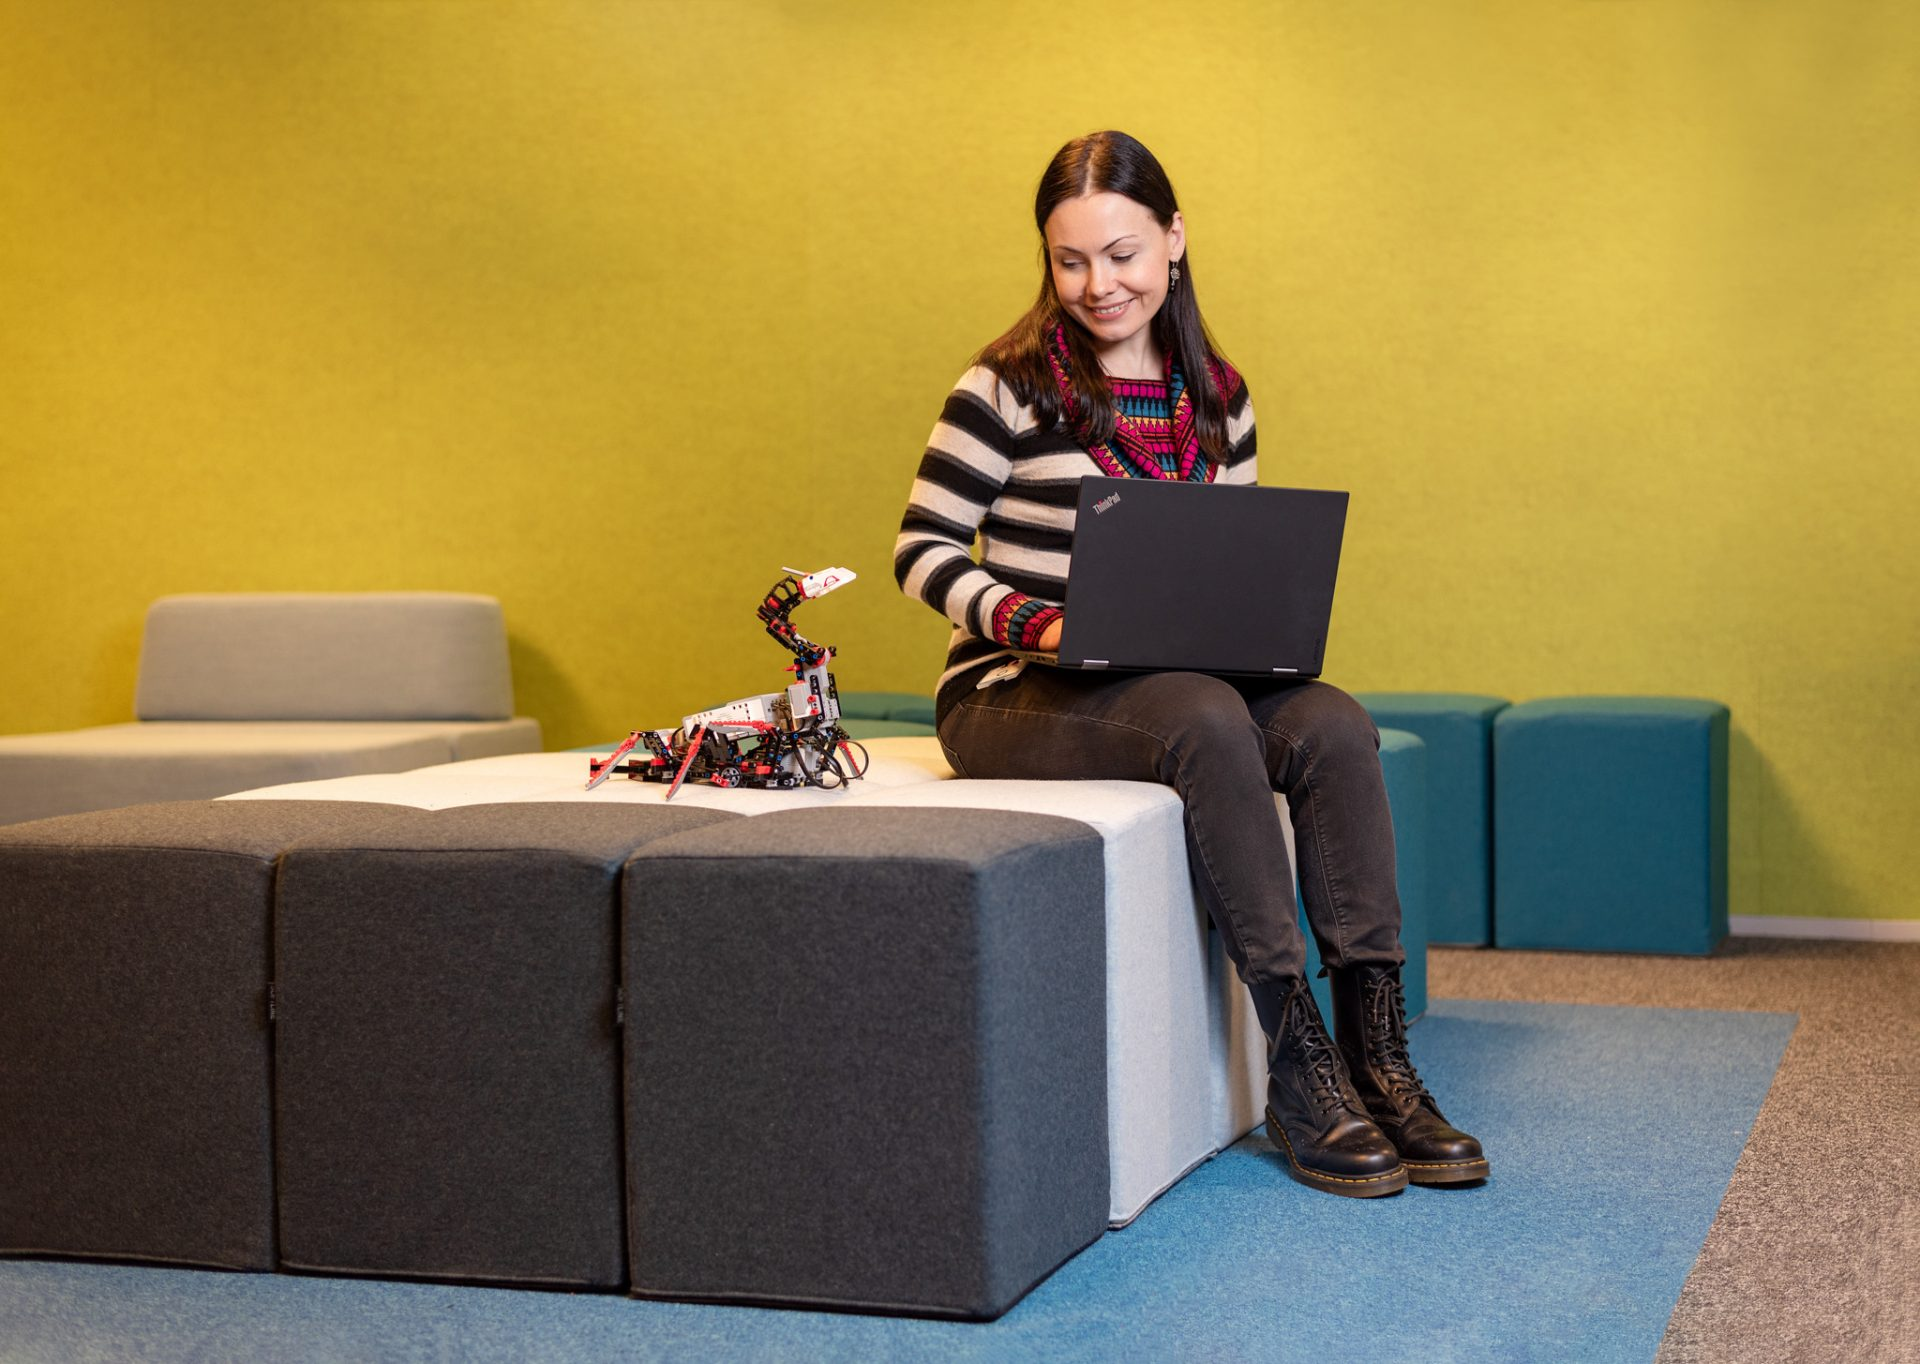 Test Engineer Karina Pietere sitting with her laptop and a toy robot.